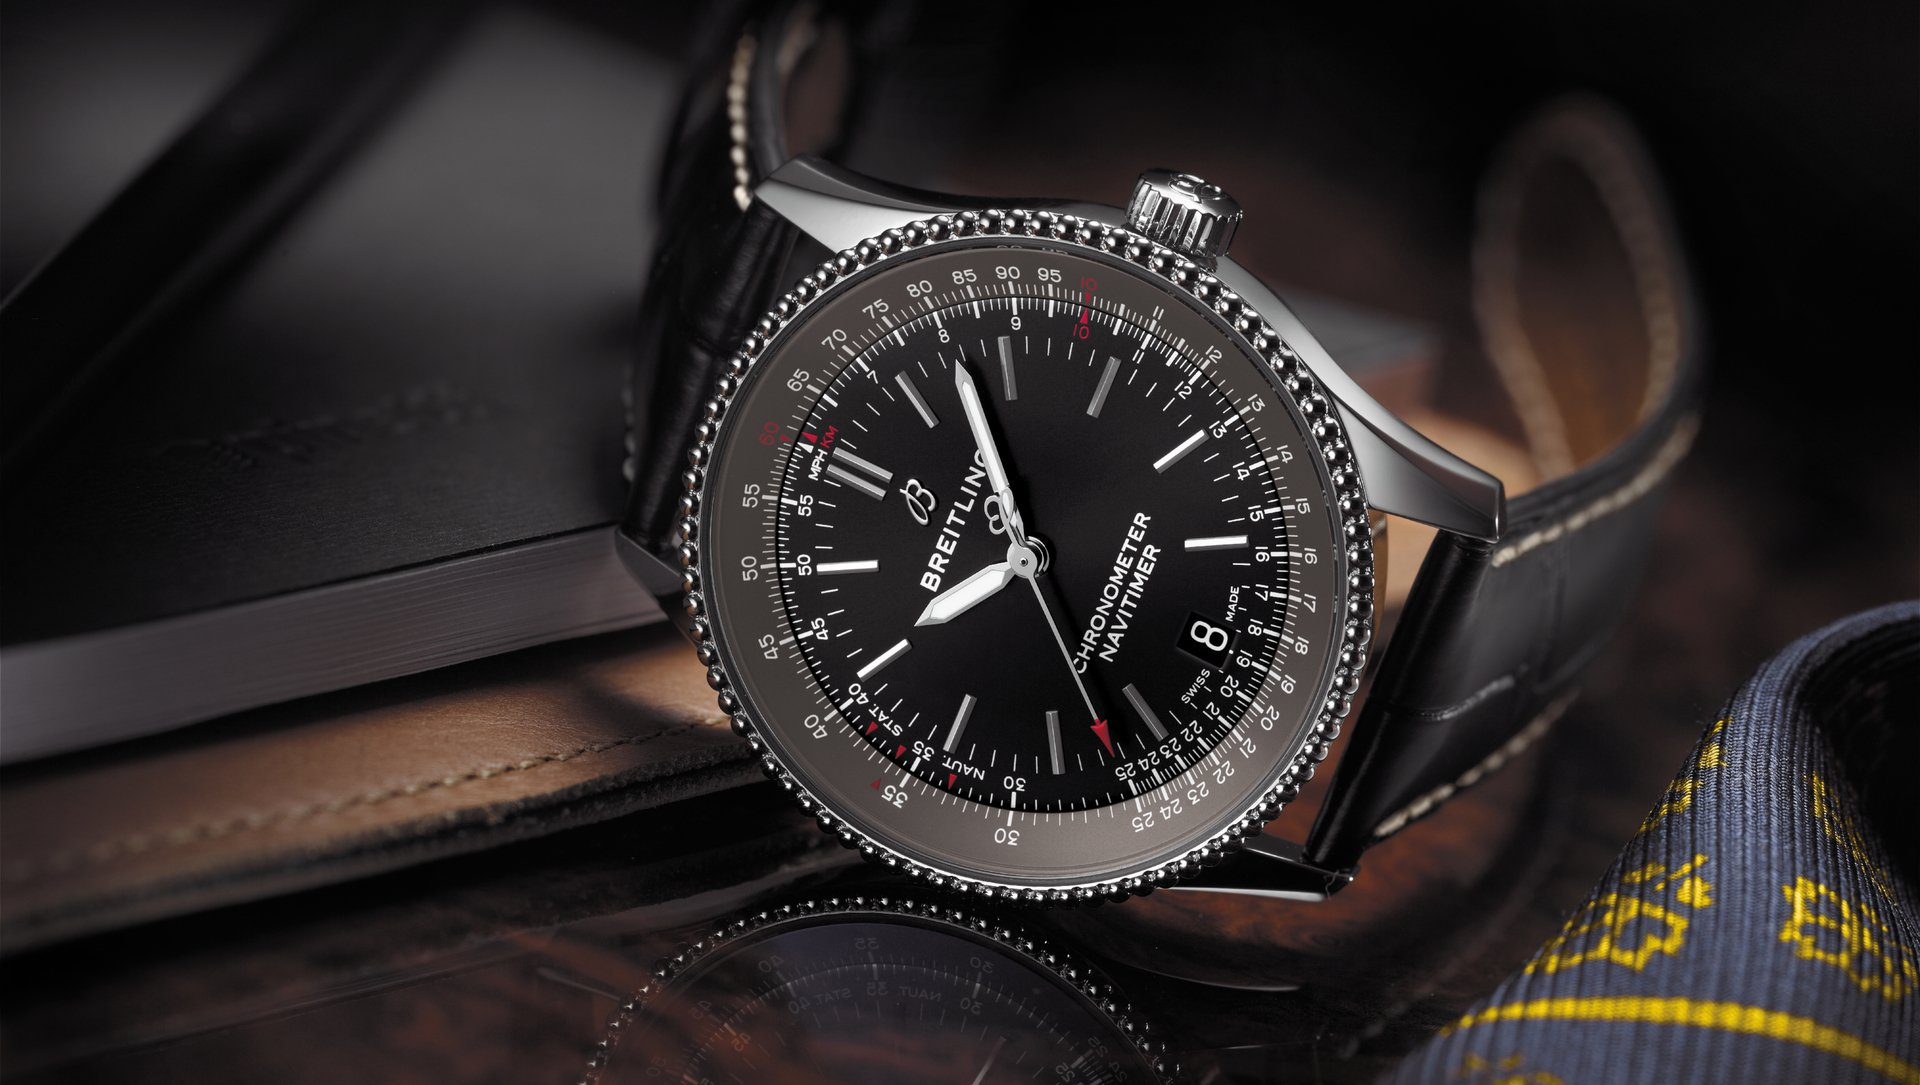 https://static.breitling.cn/media/wysiwyg/news/18-03-21-1/_1.jpg